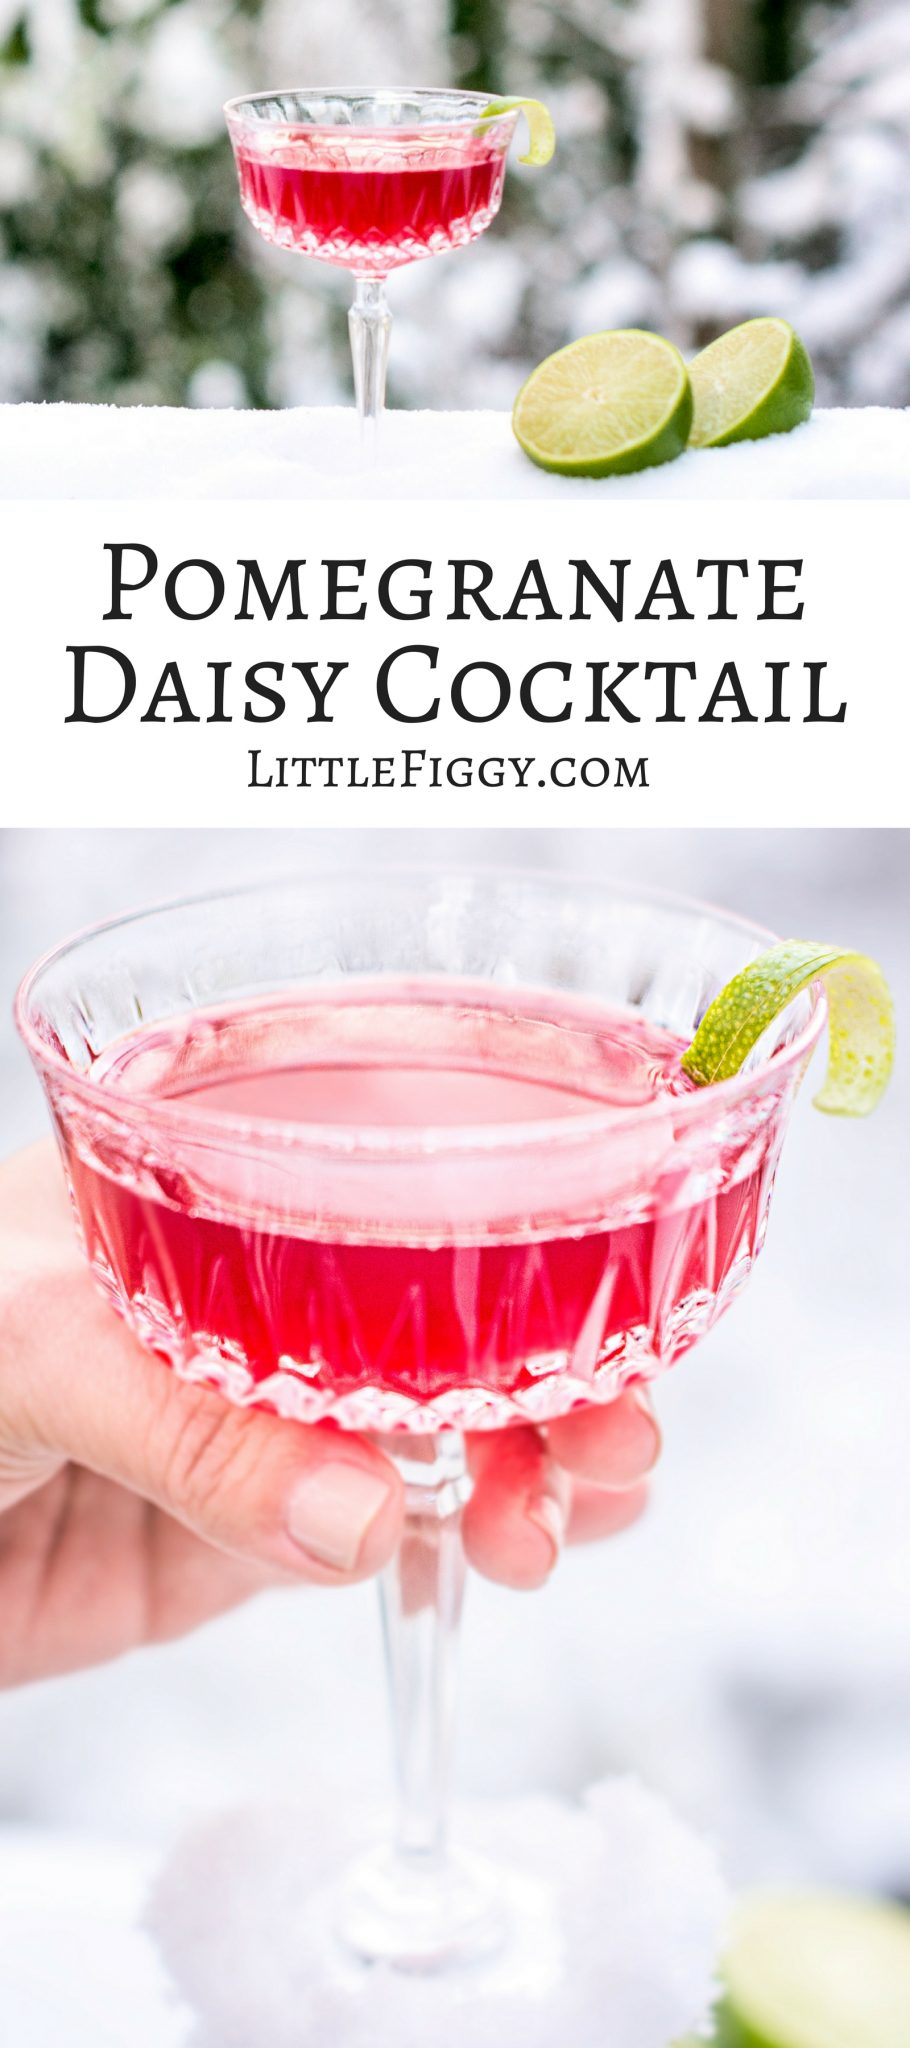 A gorgeous drink that's perfect for celebrating the holidays, the Pomegranate Daisy Cocktail! Get the recipe at Little Figgy Food!